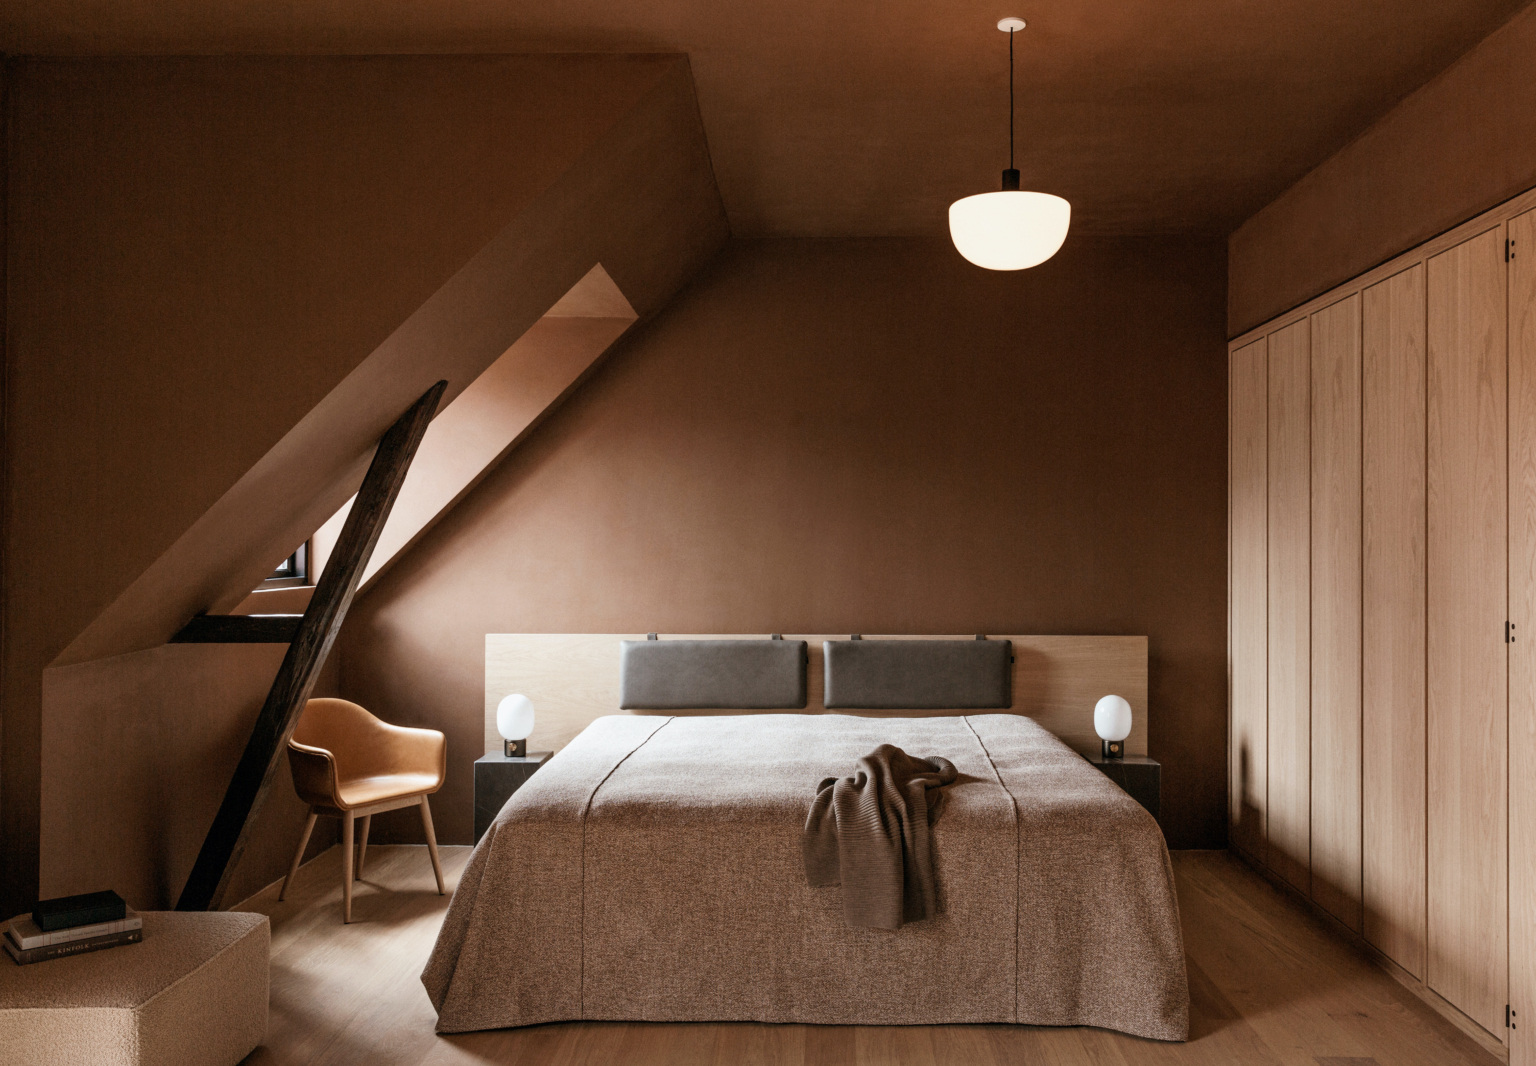 Copenhagen Clubhouse The Audo: A New Creative Hub with Guest Rooms Under the Rafters